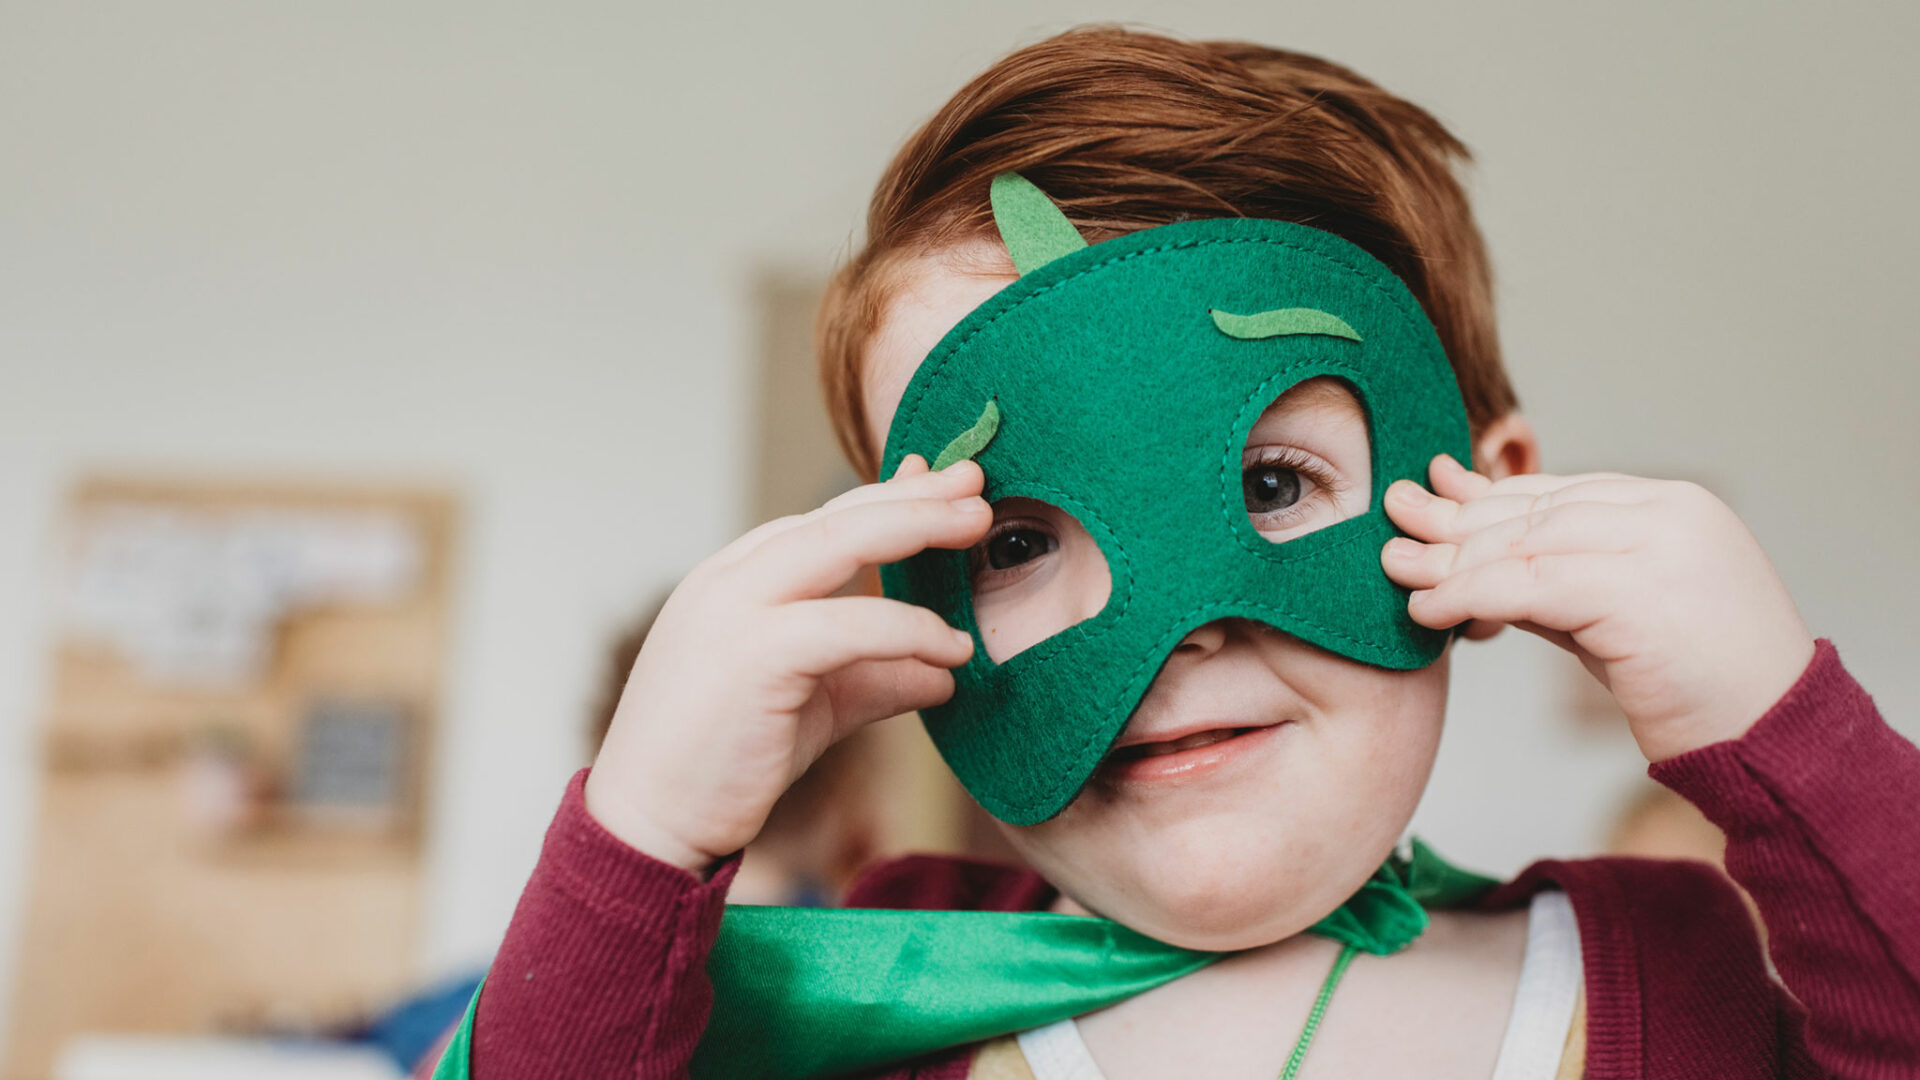 7 must-have essentials for any kid's dress-up box